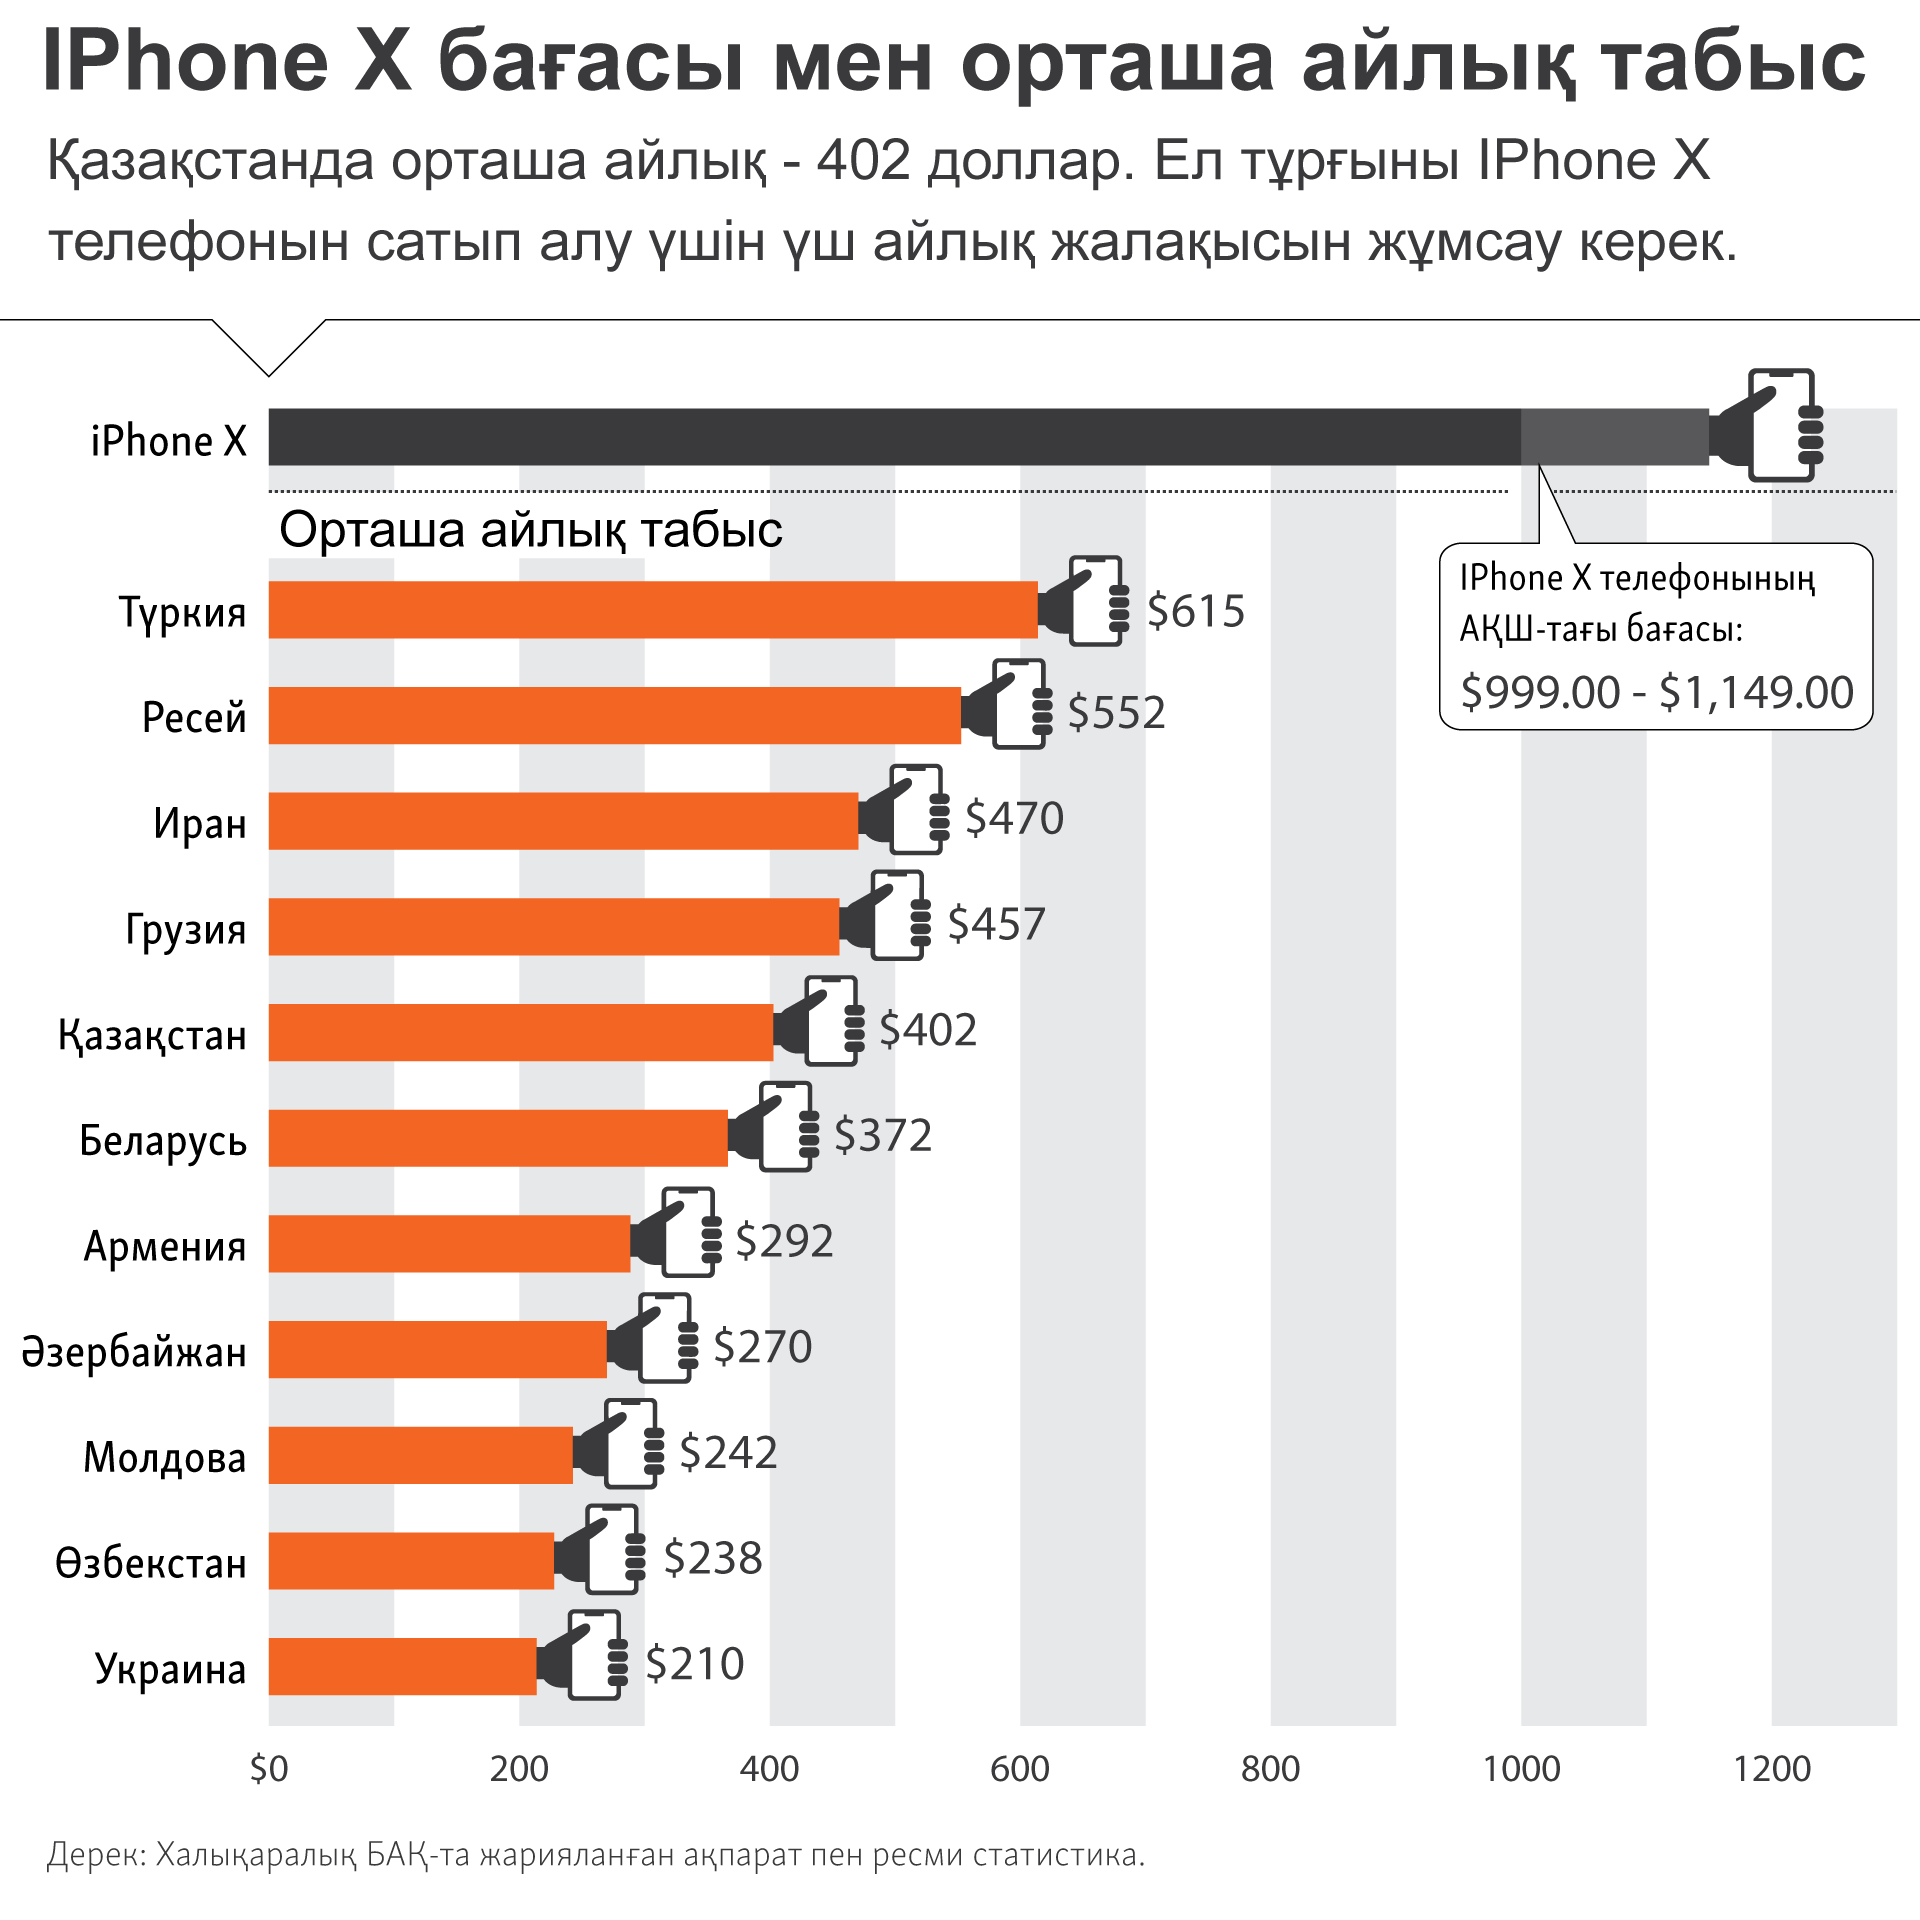 infographic about IPhone and wage